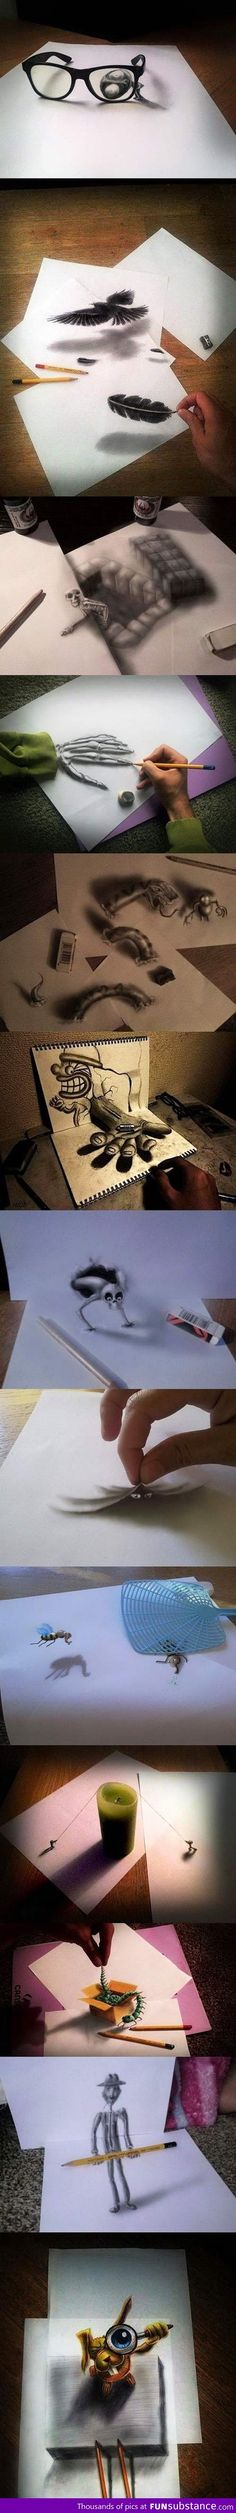 13 Awesome 3D Drawings